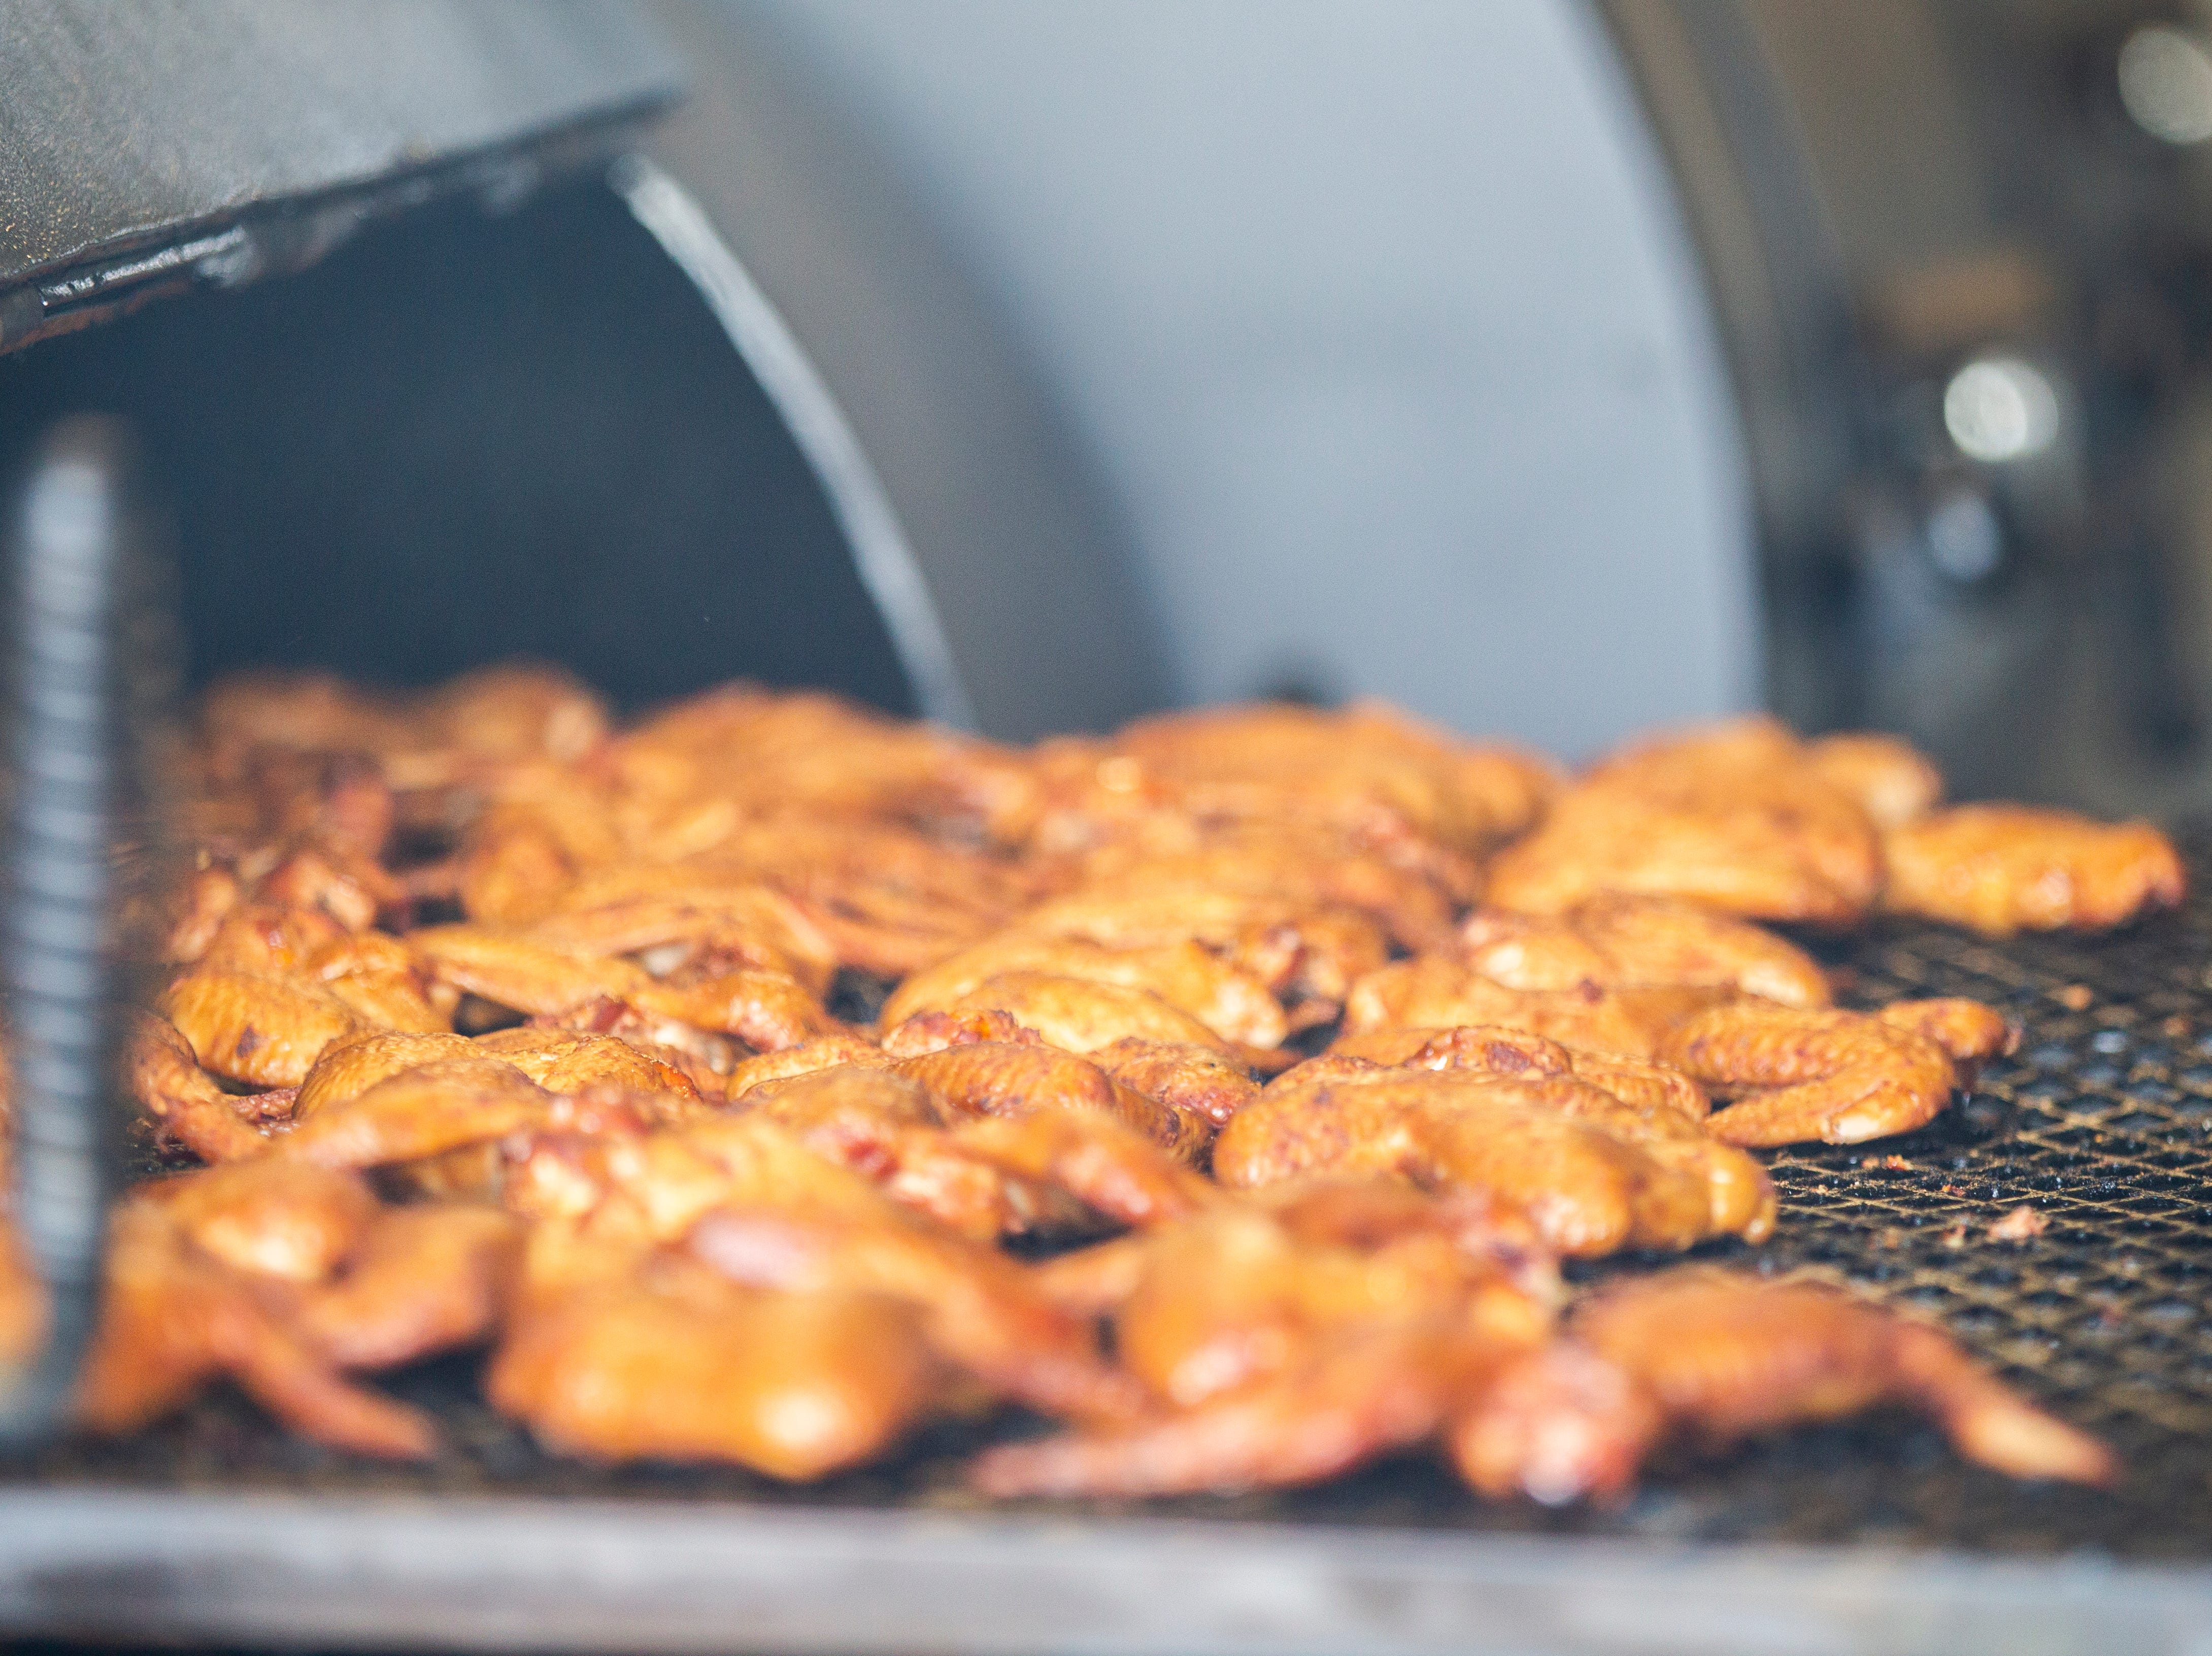 Chicken wings are seen in a smoker on Wednesday, Nov. 21, 2018, at Mosley's Barbecue and Provisions in North Liberty.